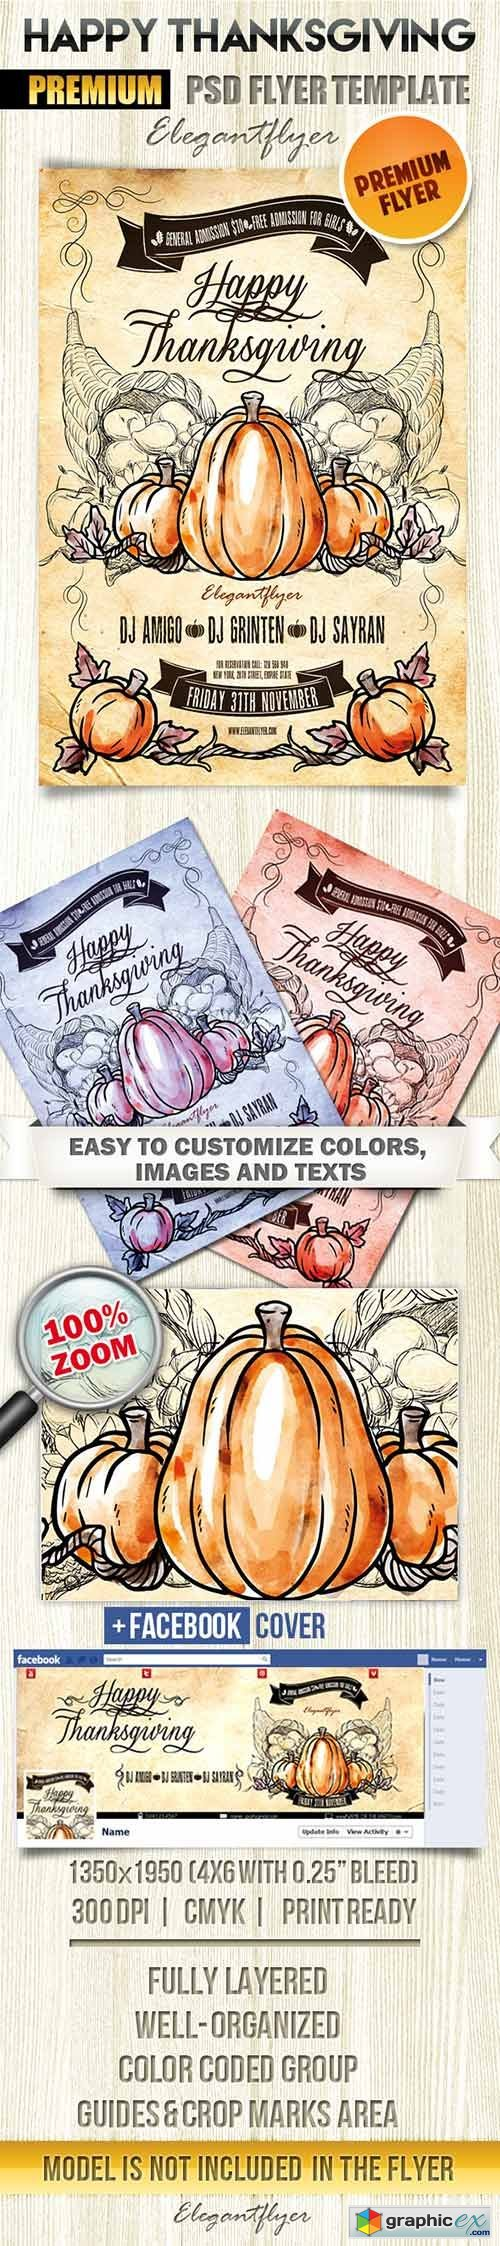 Happy Thanksgiving Flyer PSD Template + Facebook Cover